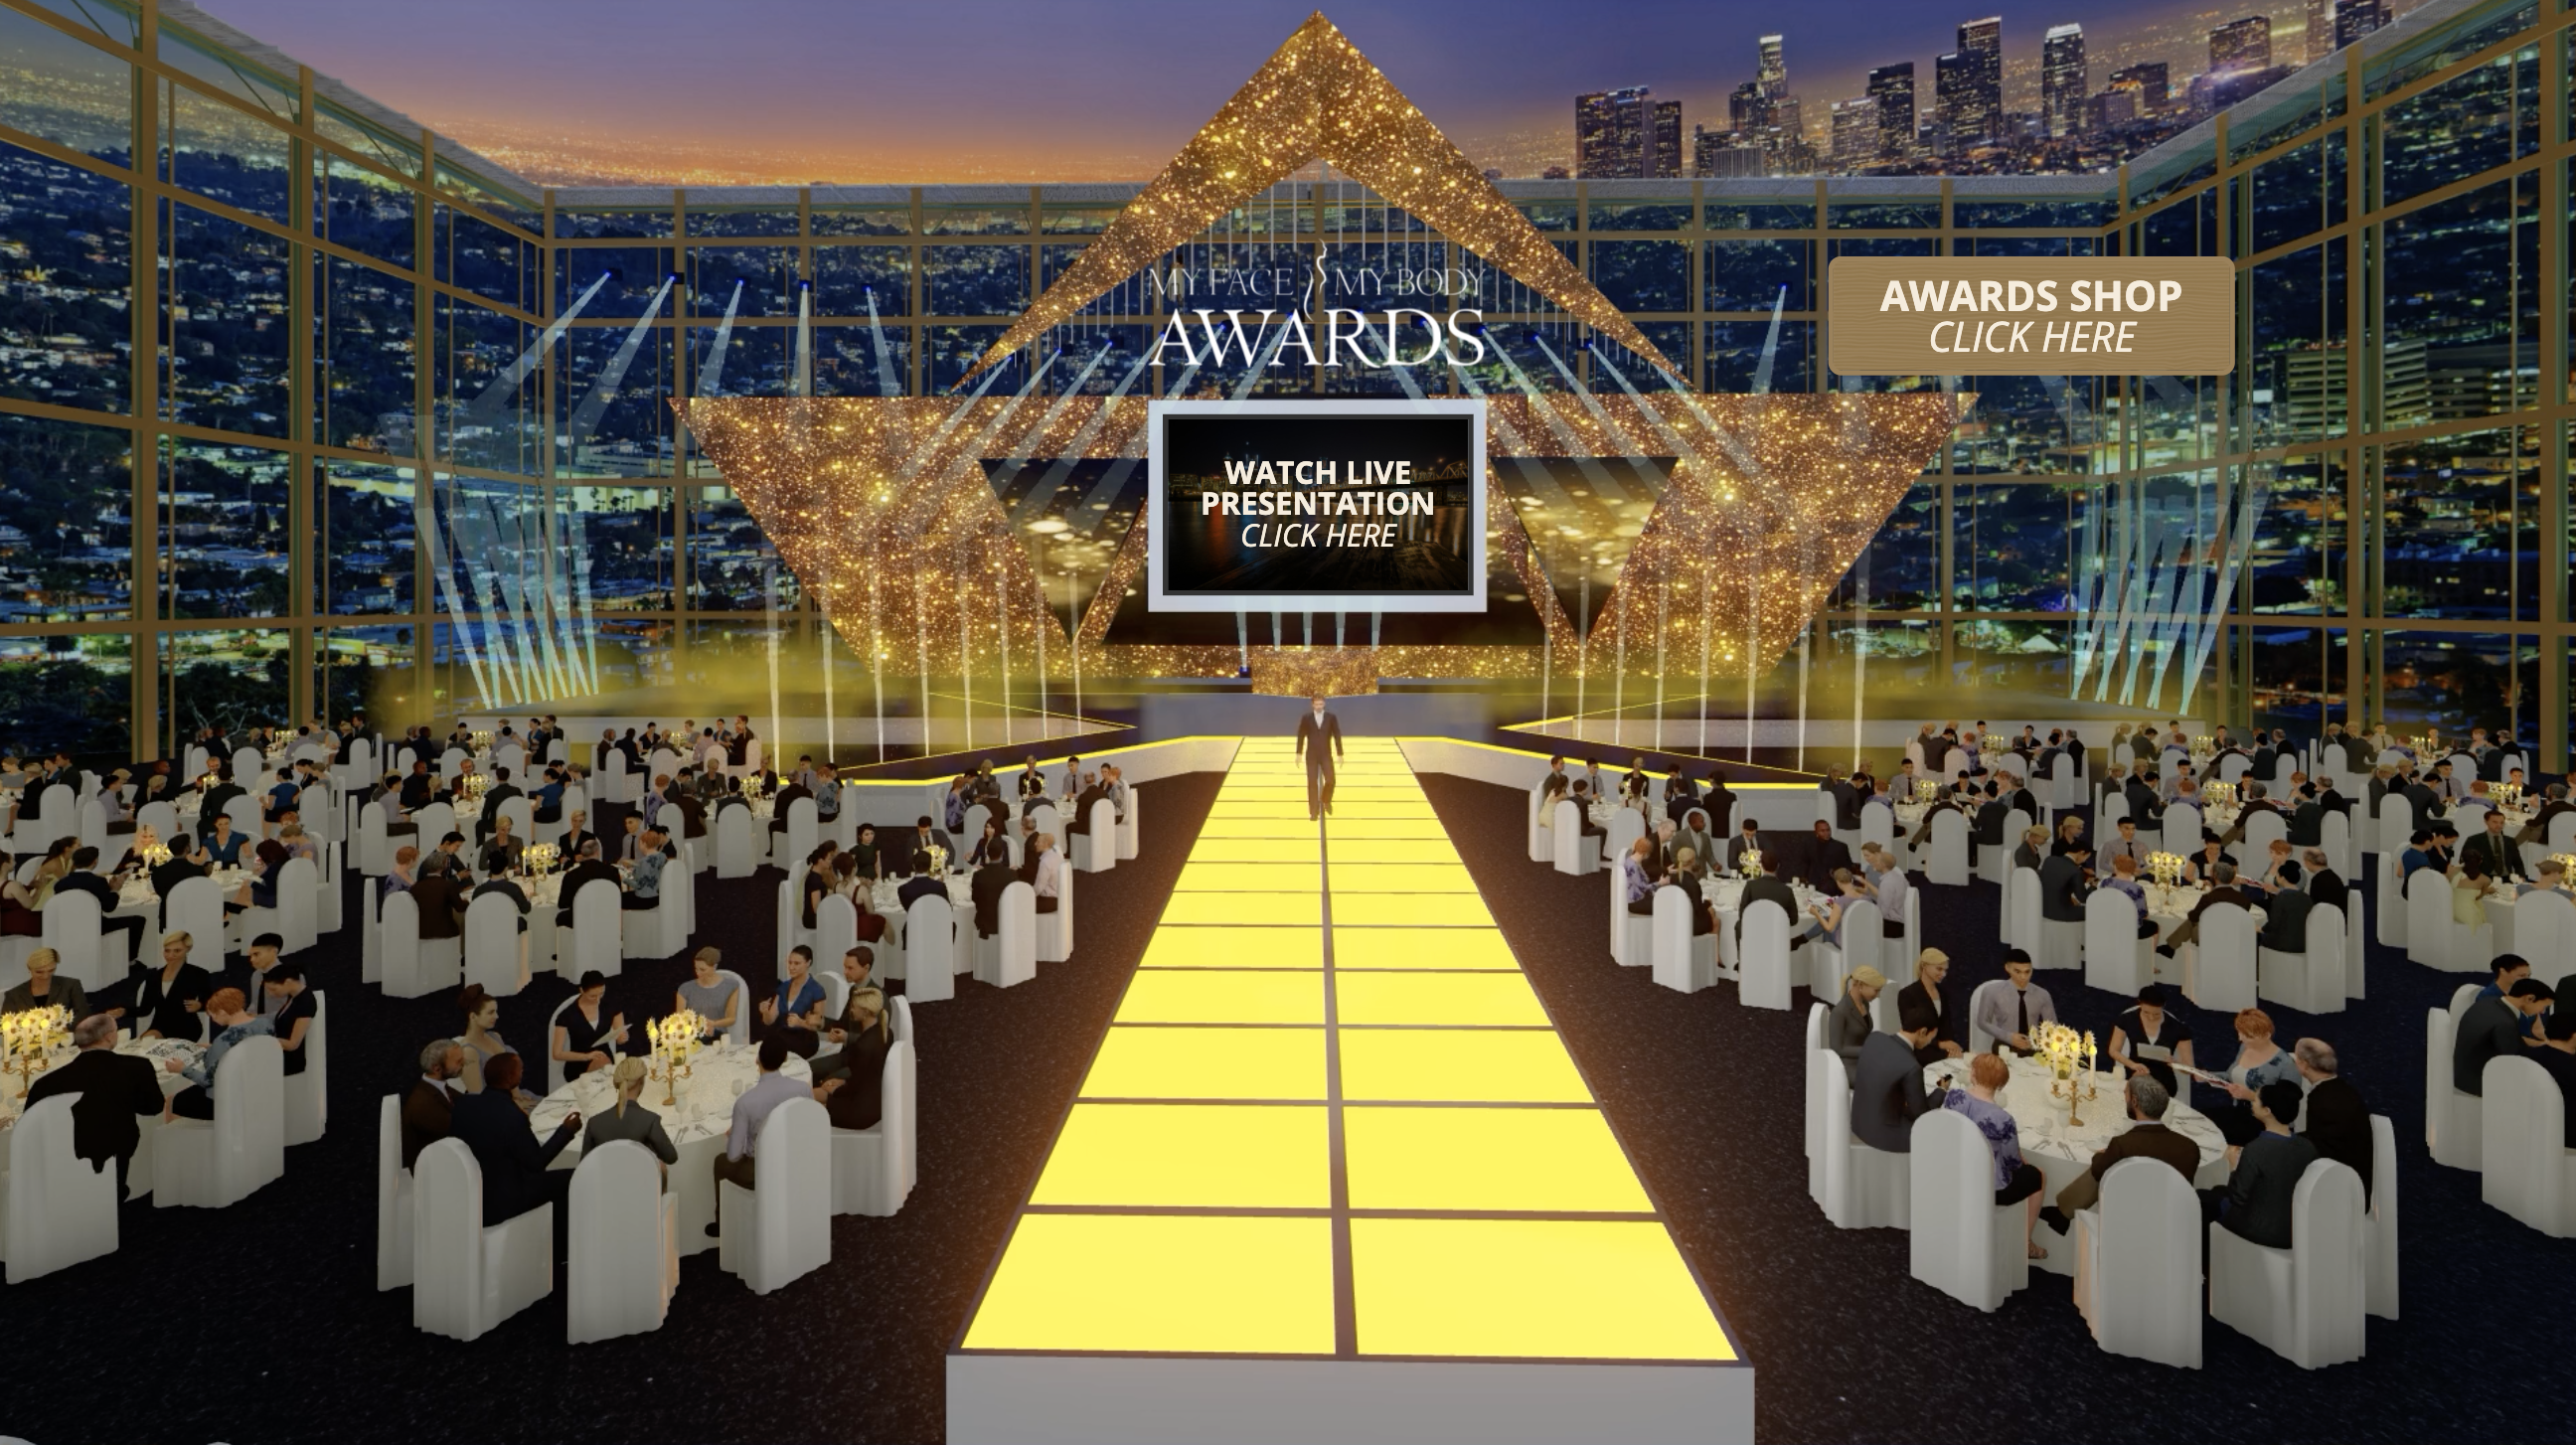 Virtual awards show with a stage and tables